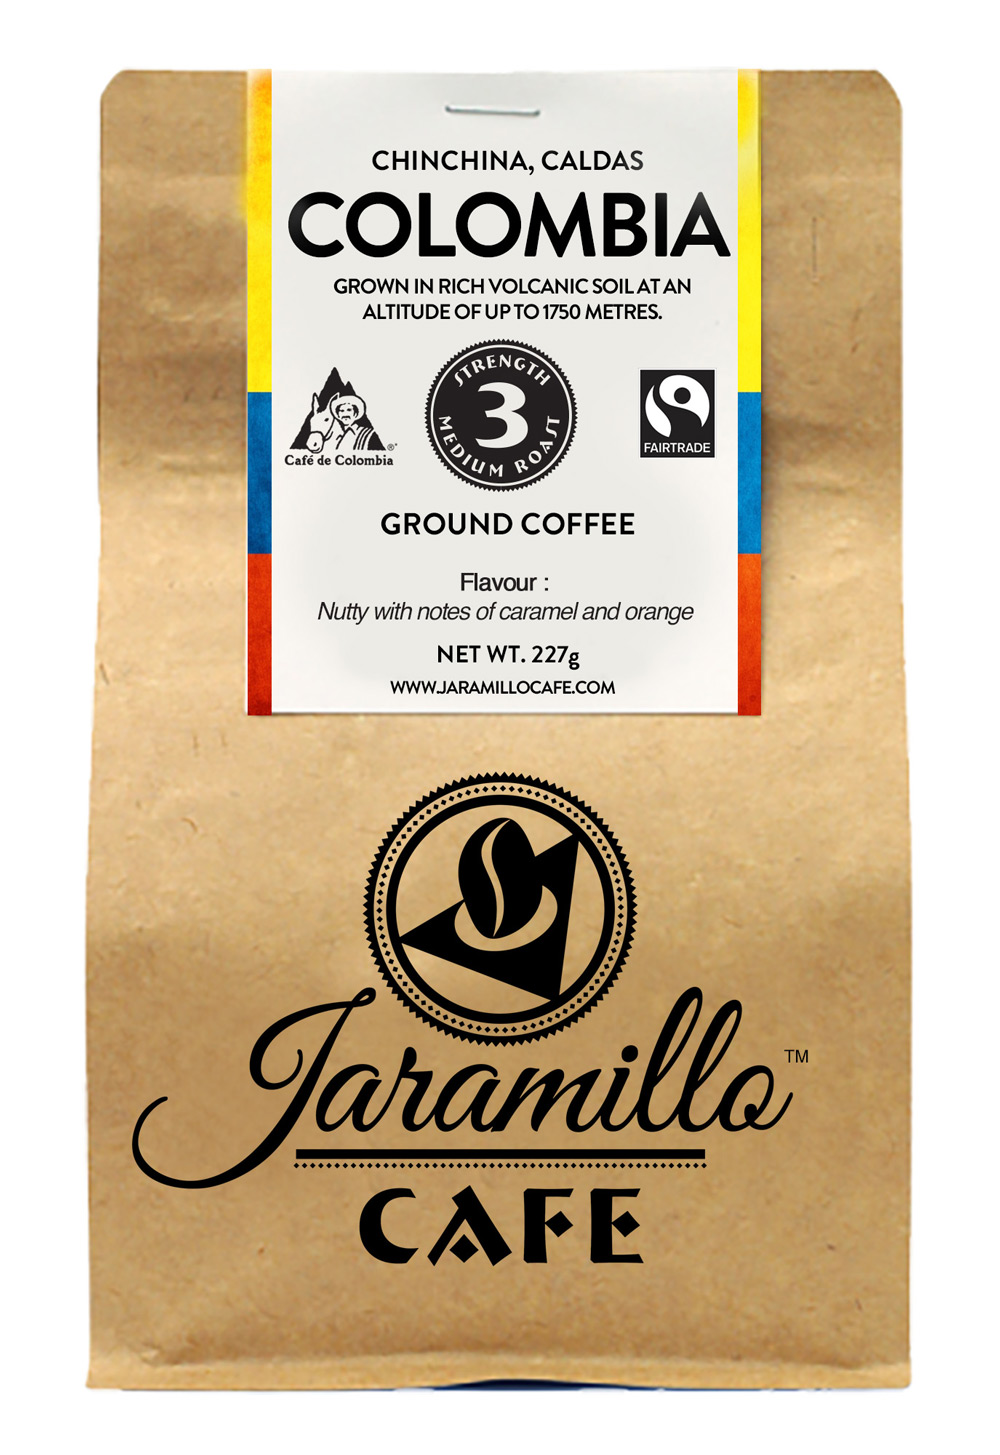 Jaramillo full bag rendering coffee beans packaging design